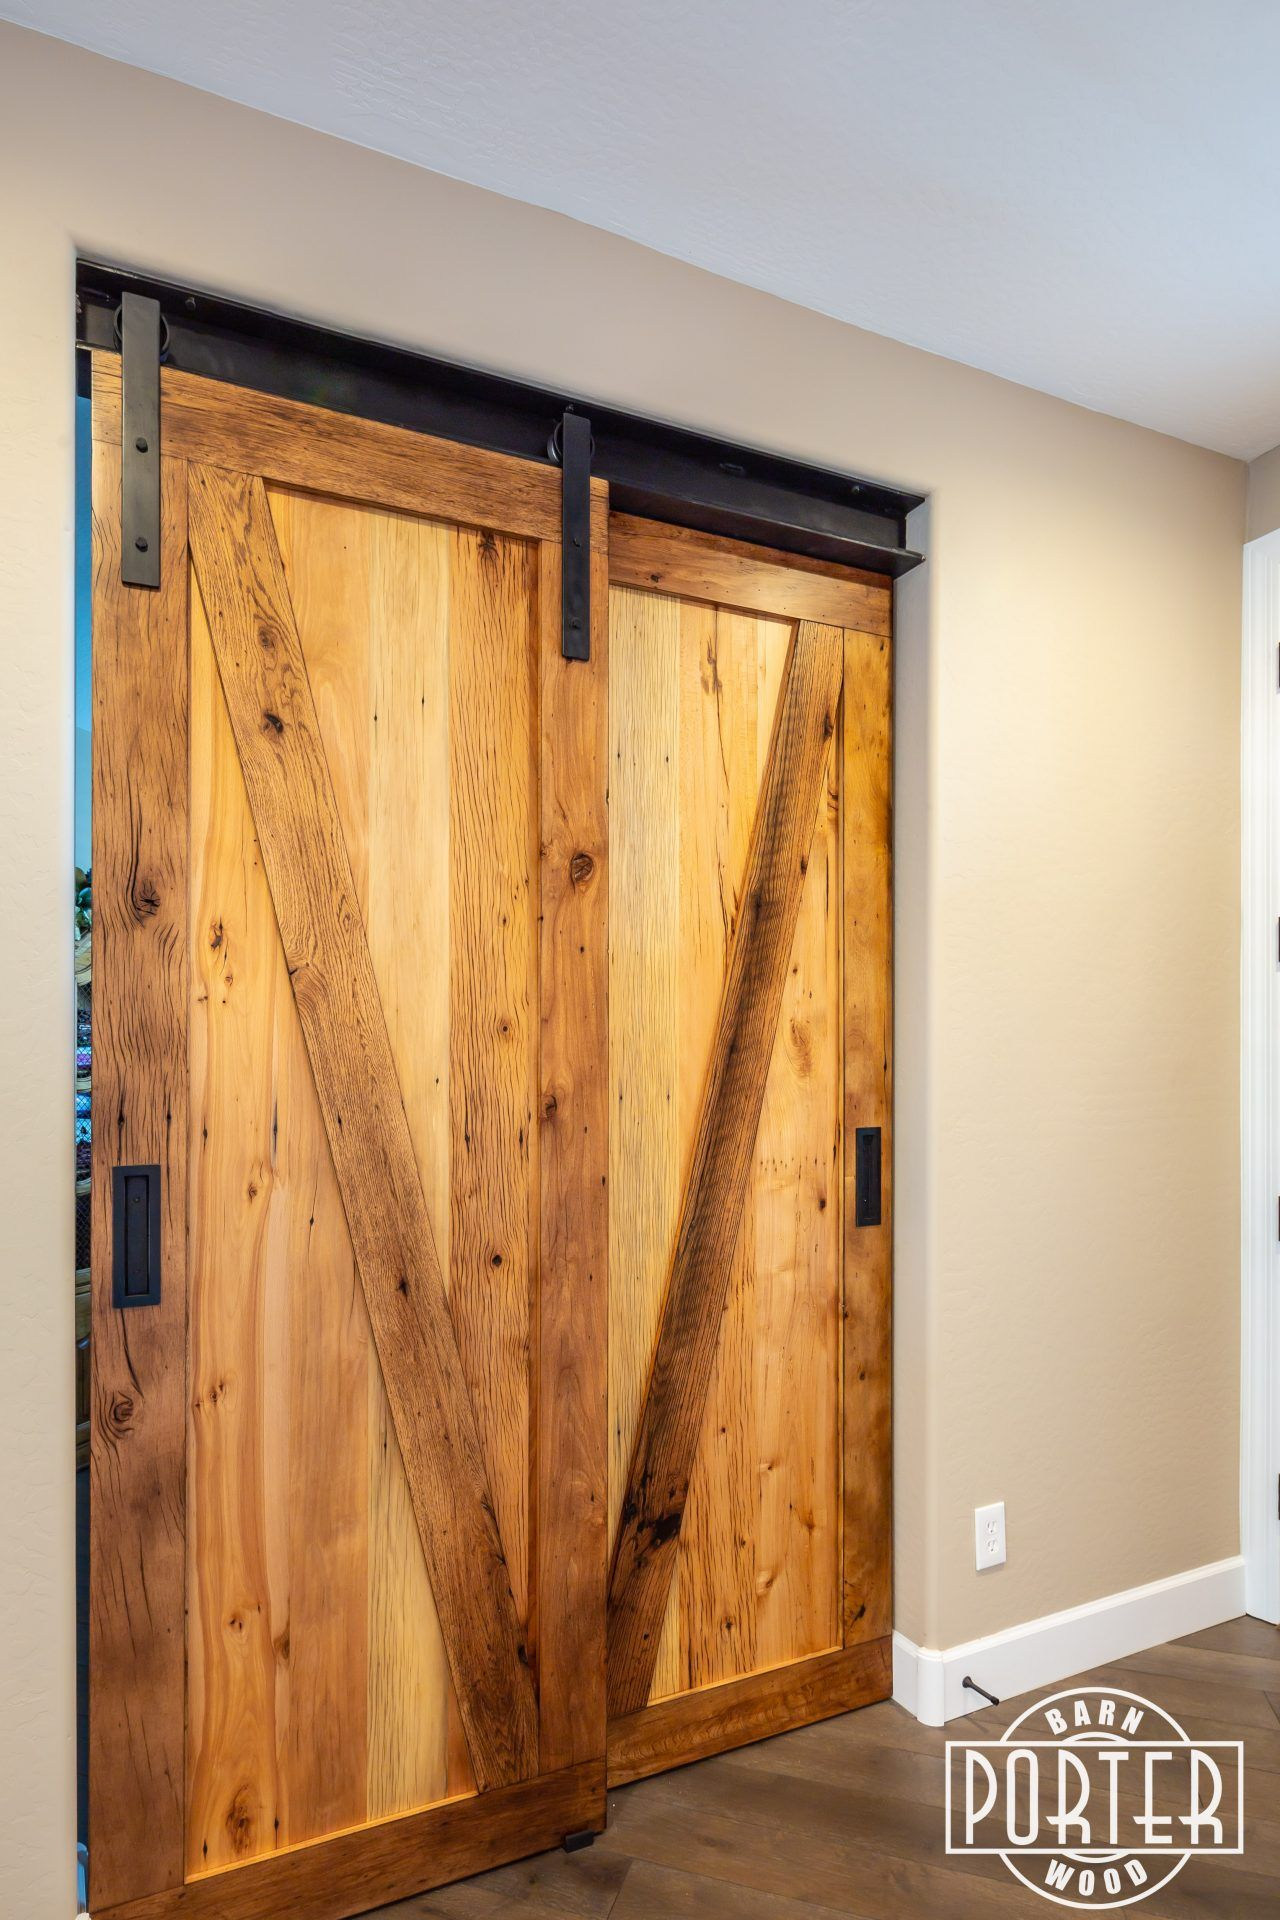 I Beam Bypass Sliding Doors Porter Barn Wood Barn Door Decor Sliding Doors Beams